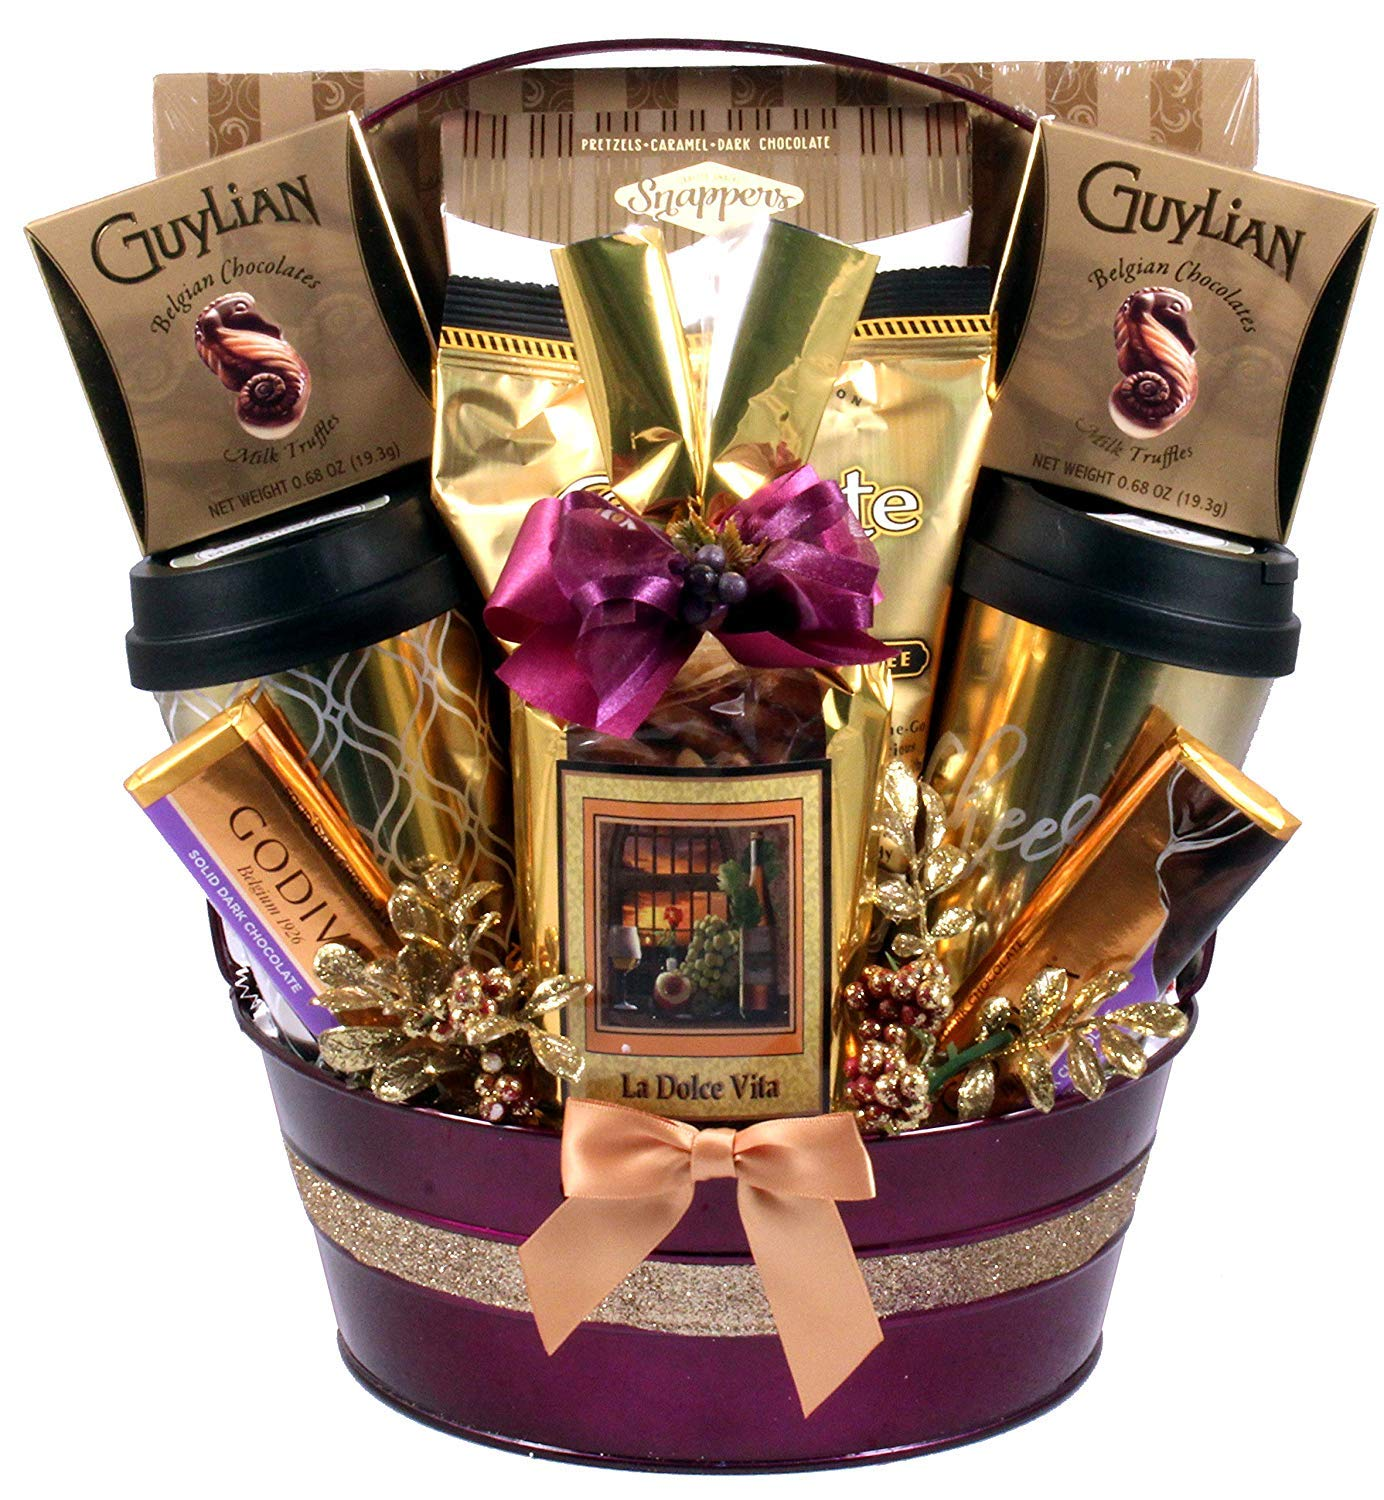 The Good Life, A Decadent, Indulgent Gourmet Sweets Gift Basket Like No Other,